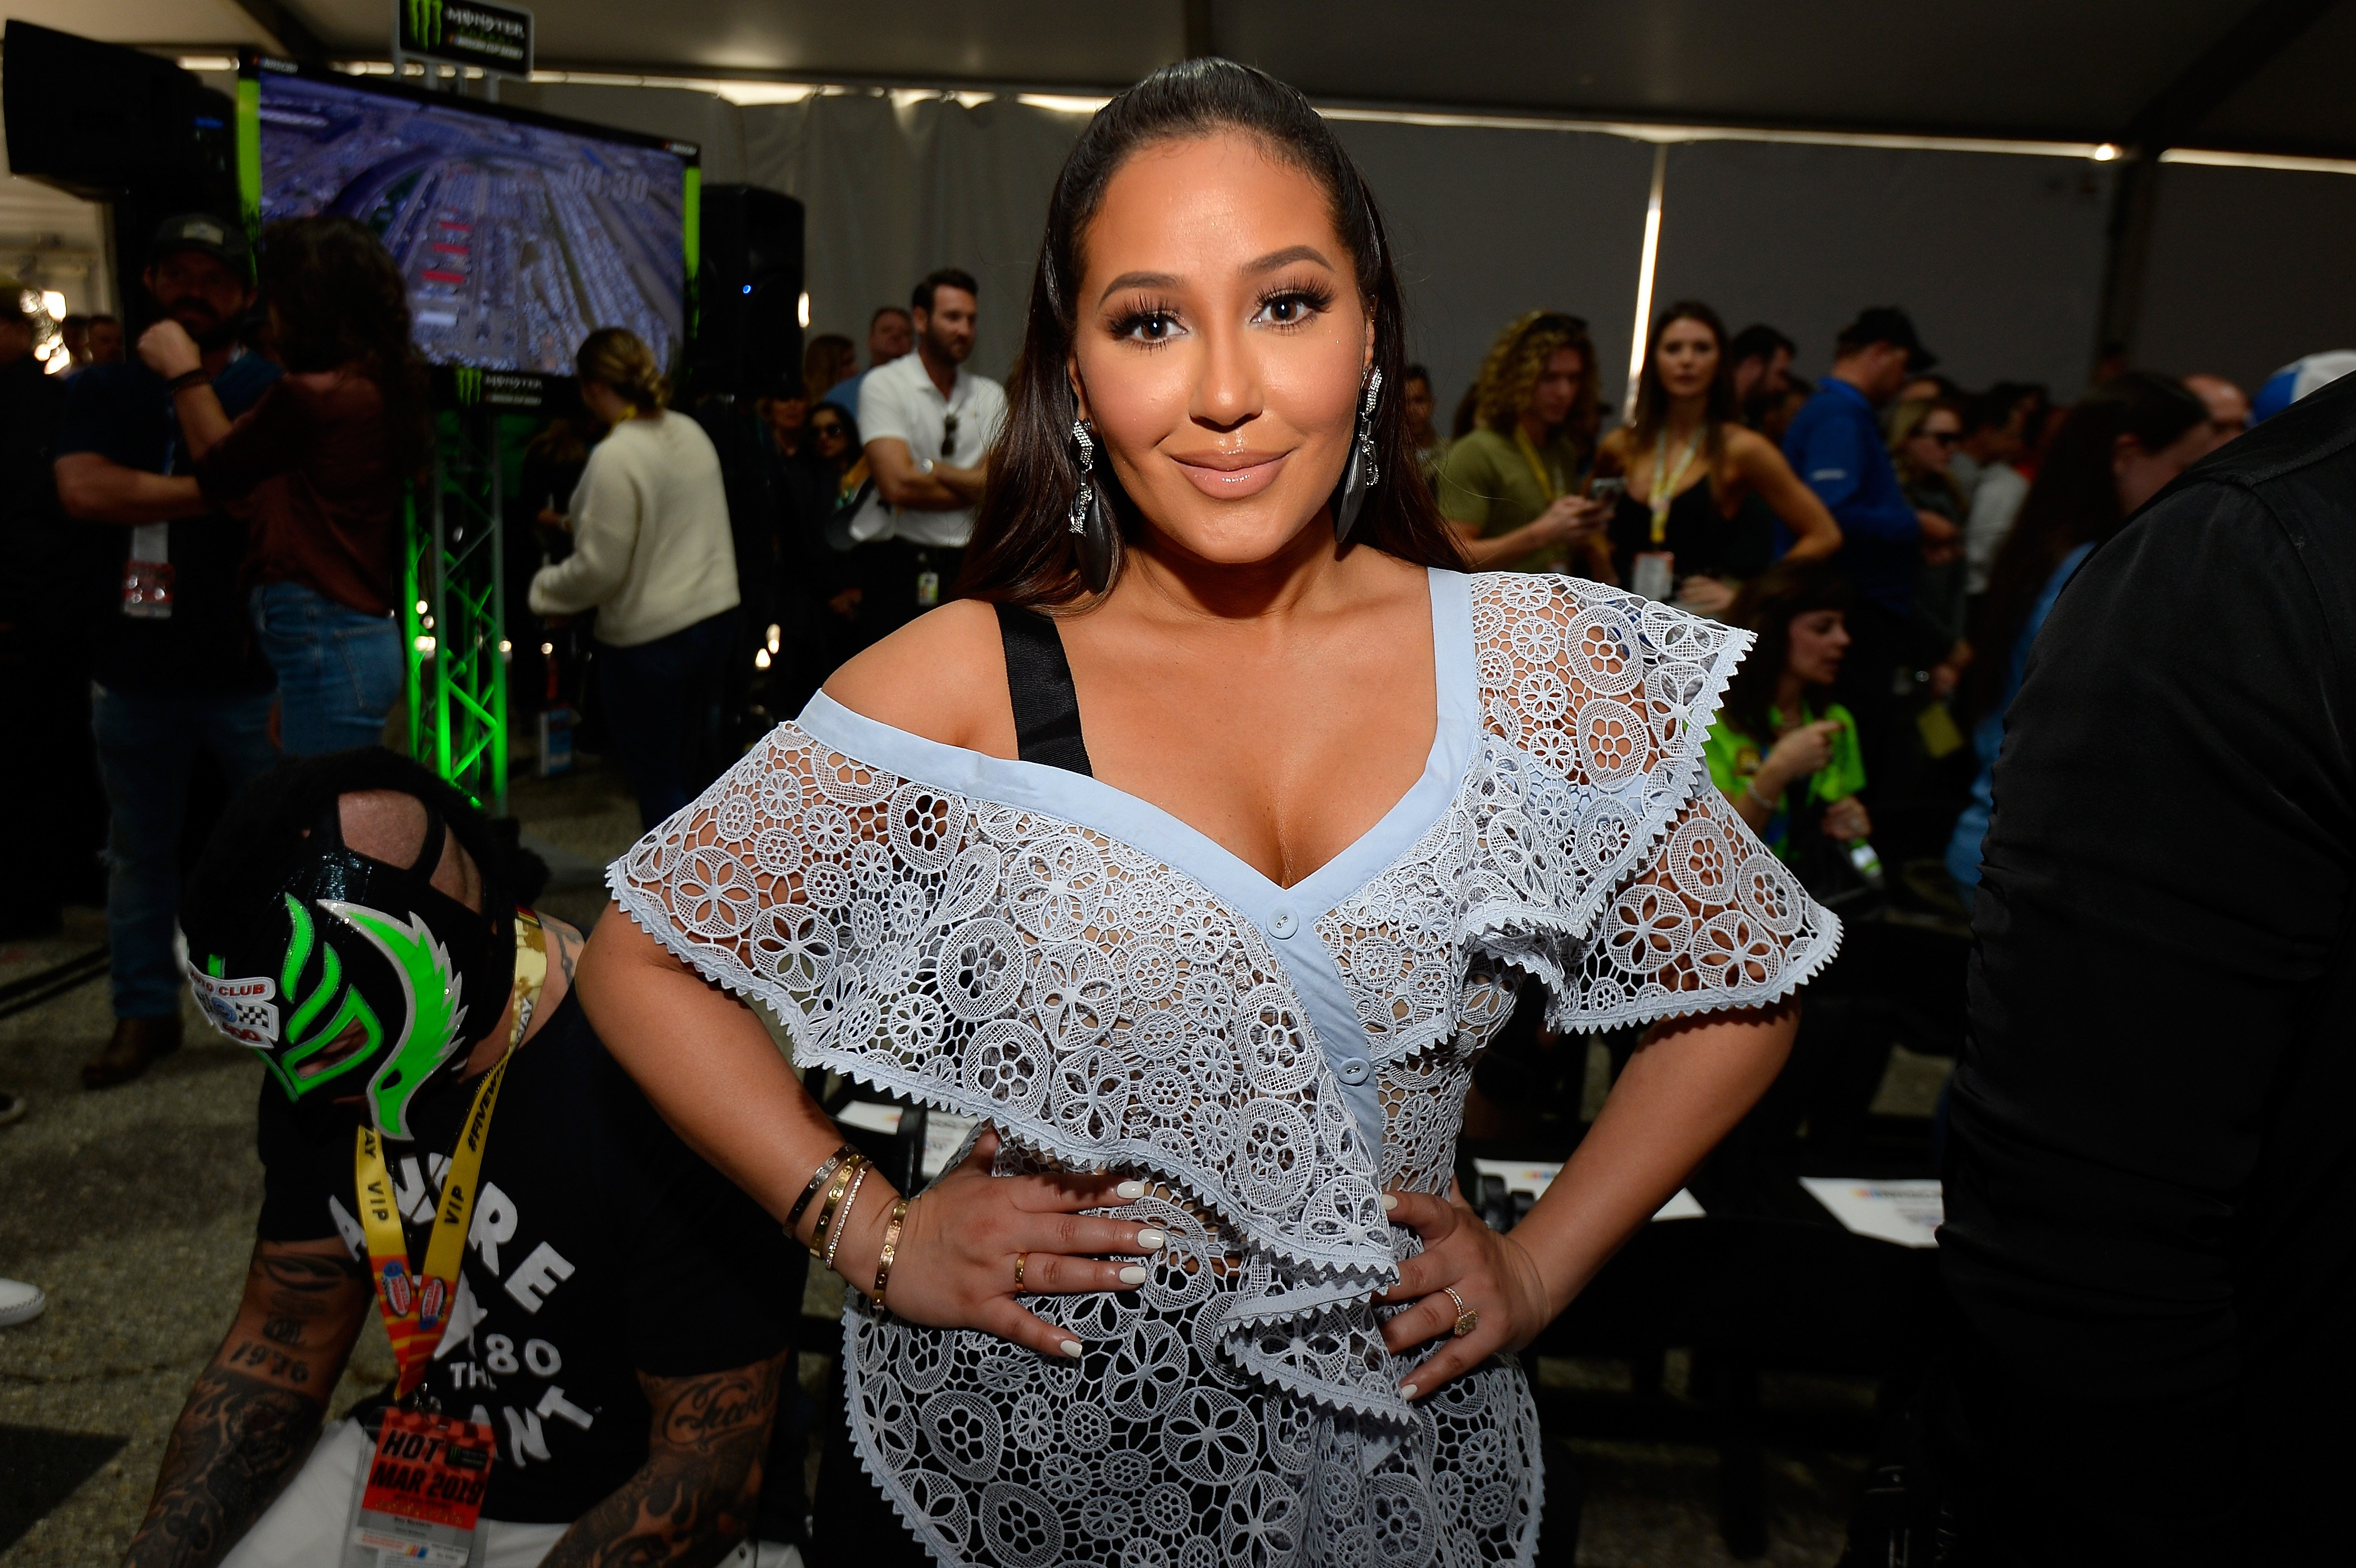 Adrienne Houghton attends the driver's meeting prior to the Monster Energy NASCAR Cup Series Auto Club 400 at Auto Club Speedway on March 17, 2019 | Photo: GettyImages